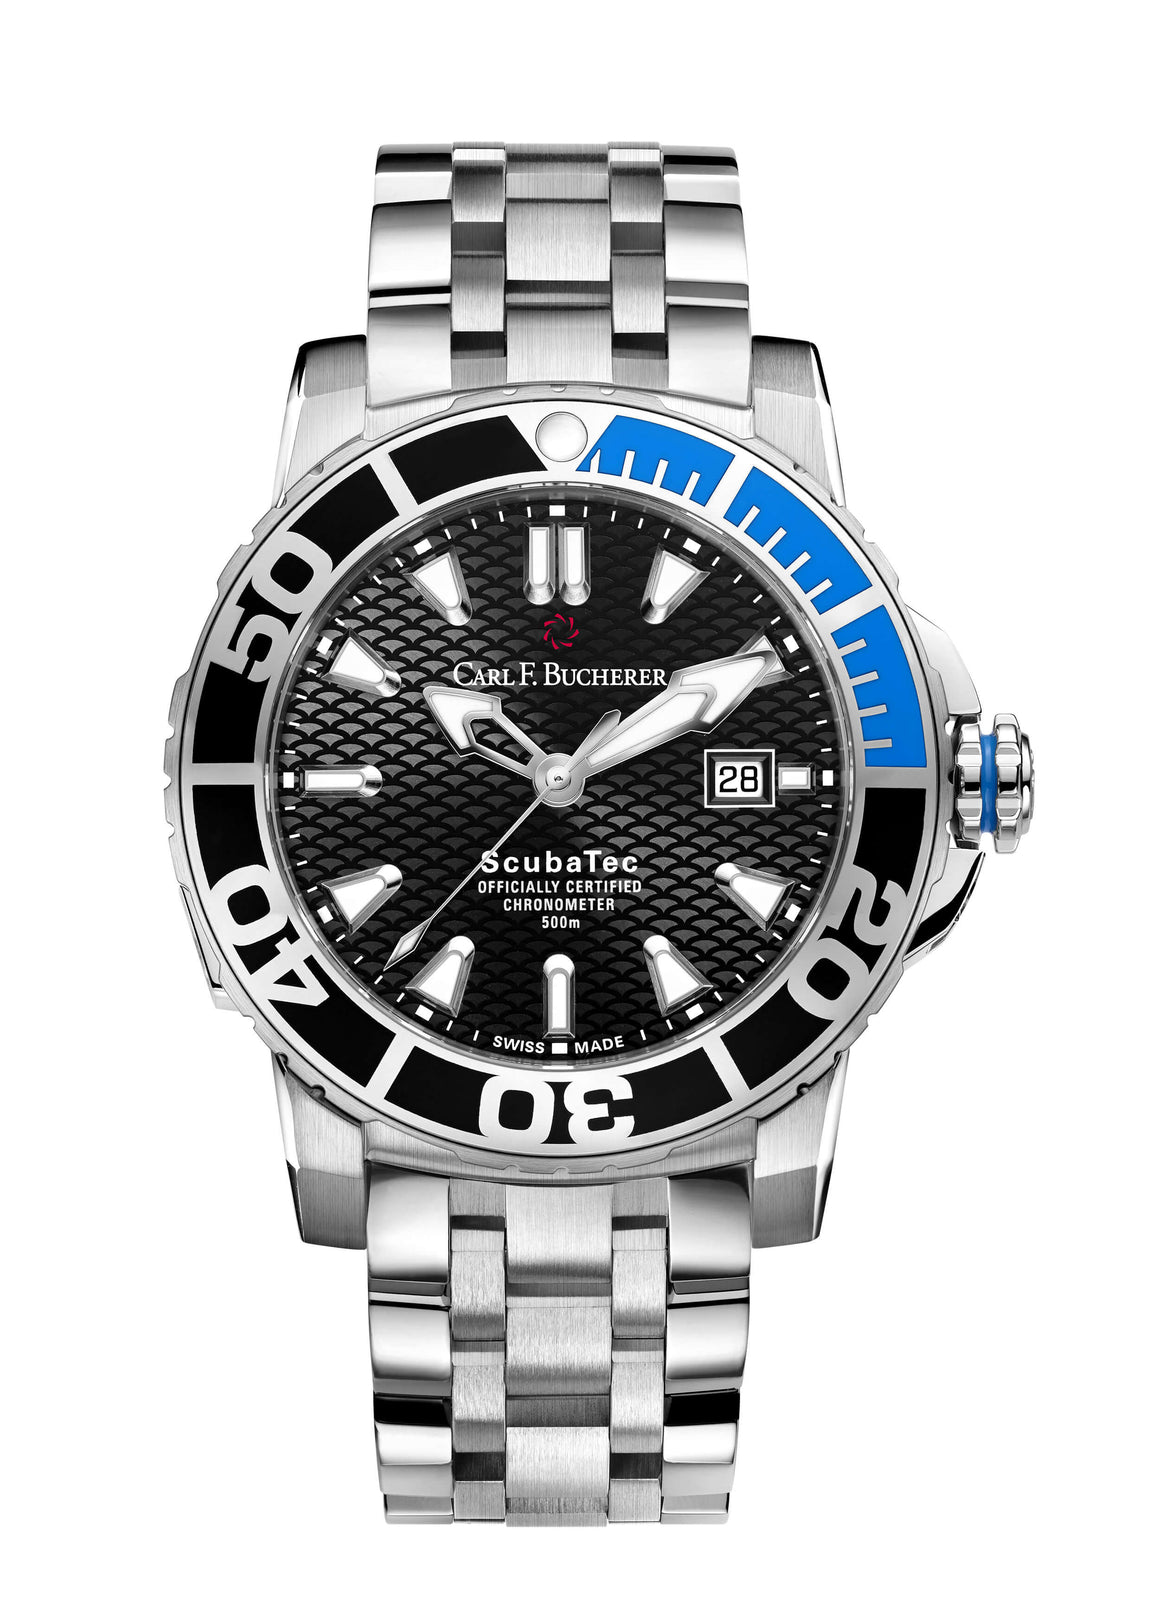 Carl F. Bucherer Petravi Scubatec Watch